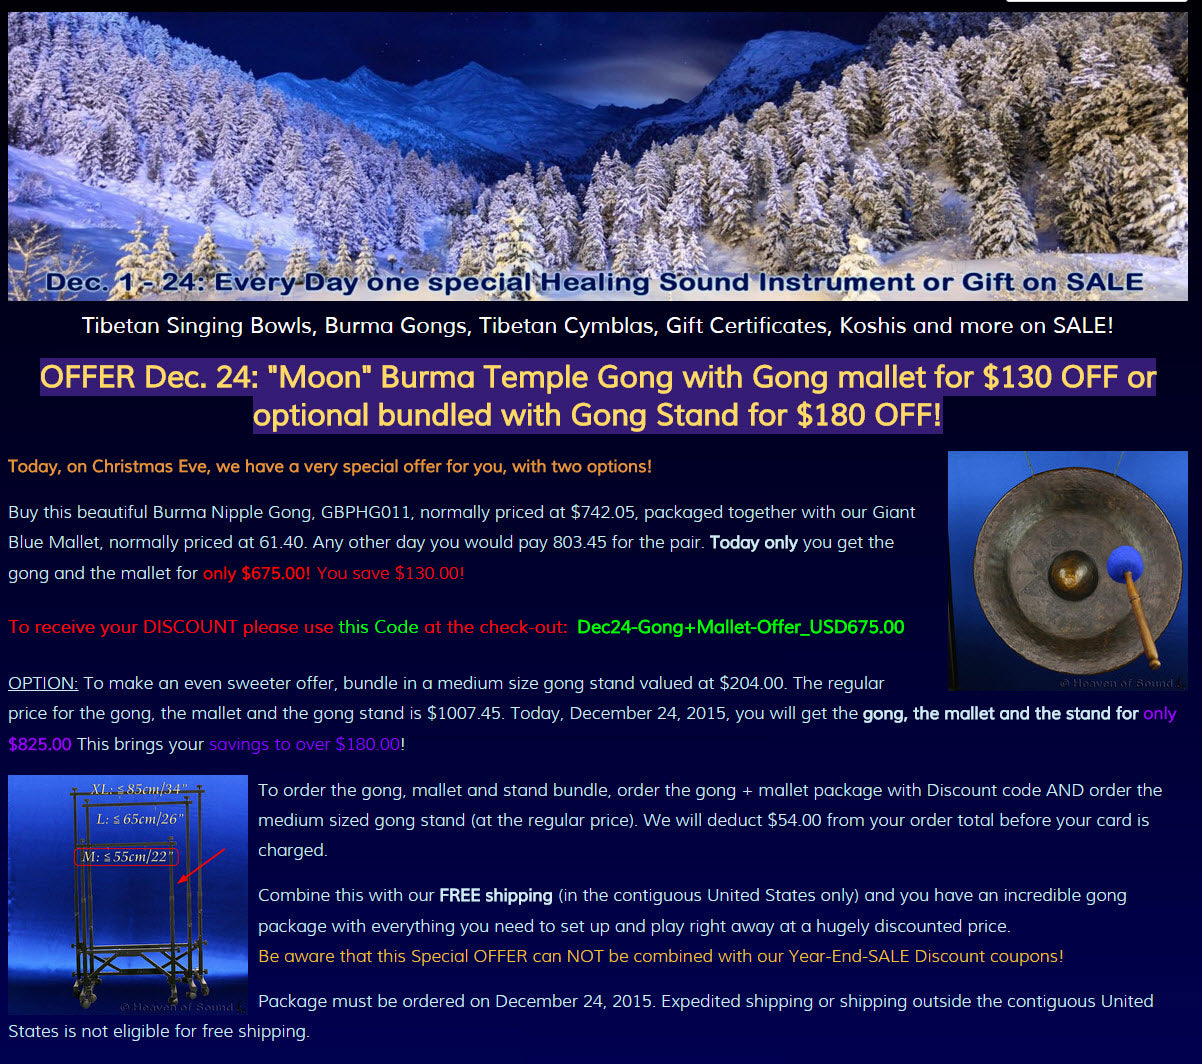 Incredible holiday savings on a beautiful gong package!